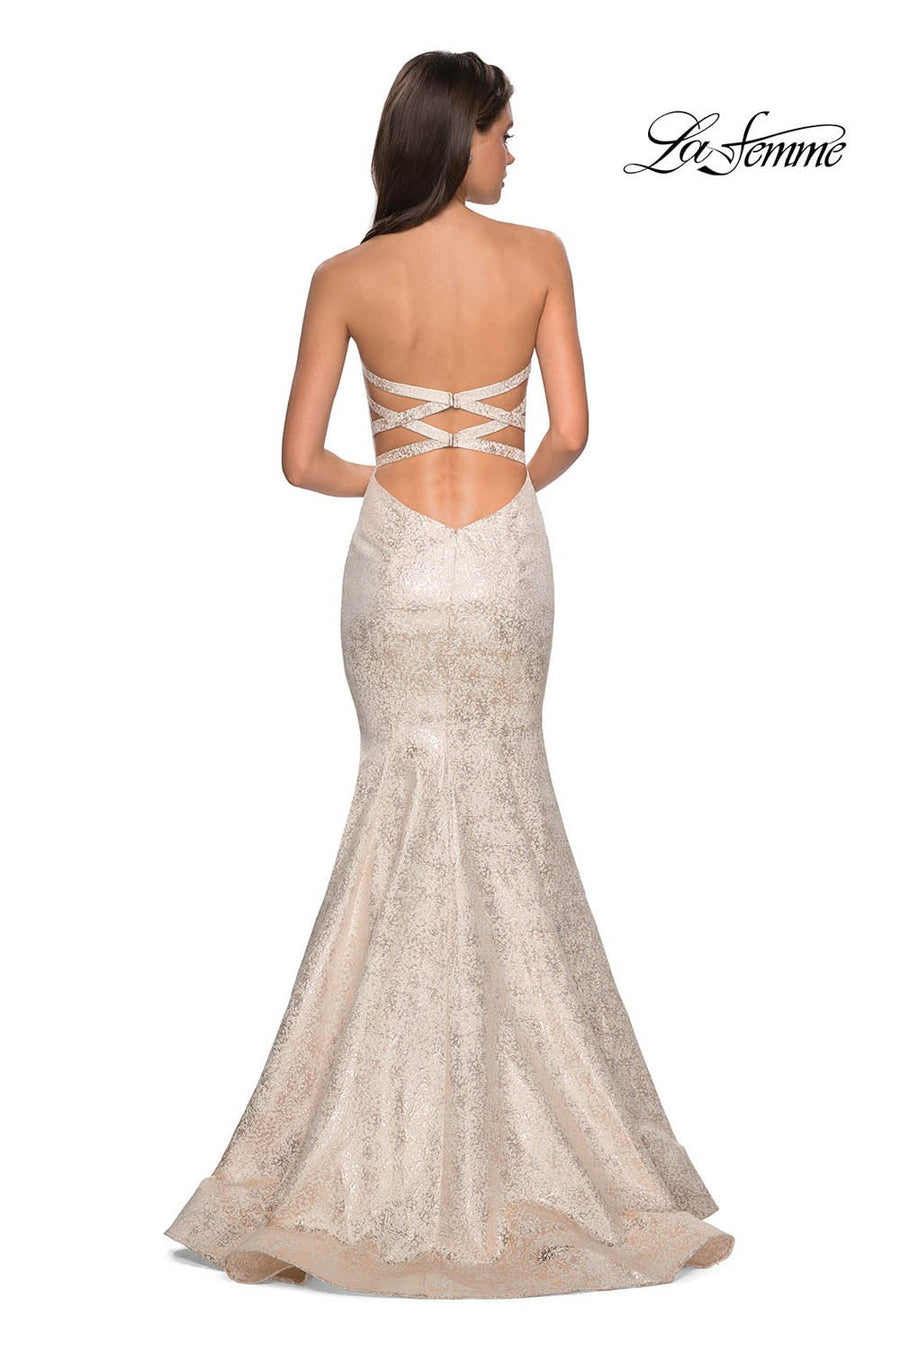 La Femme 27789 prom dress images.  La Femme 27789 is available in these colors: Ivory Gold.